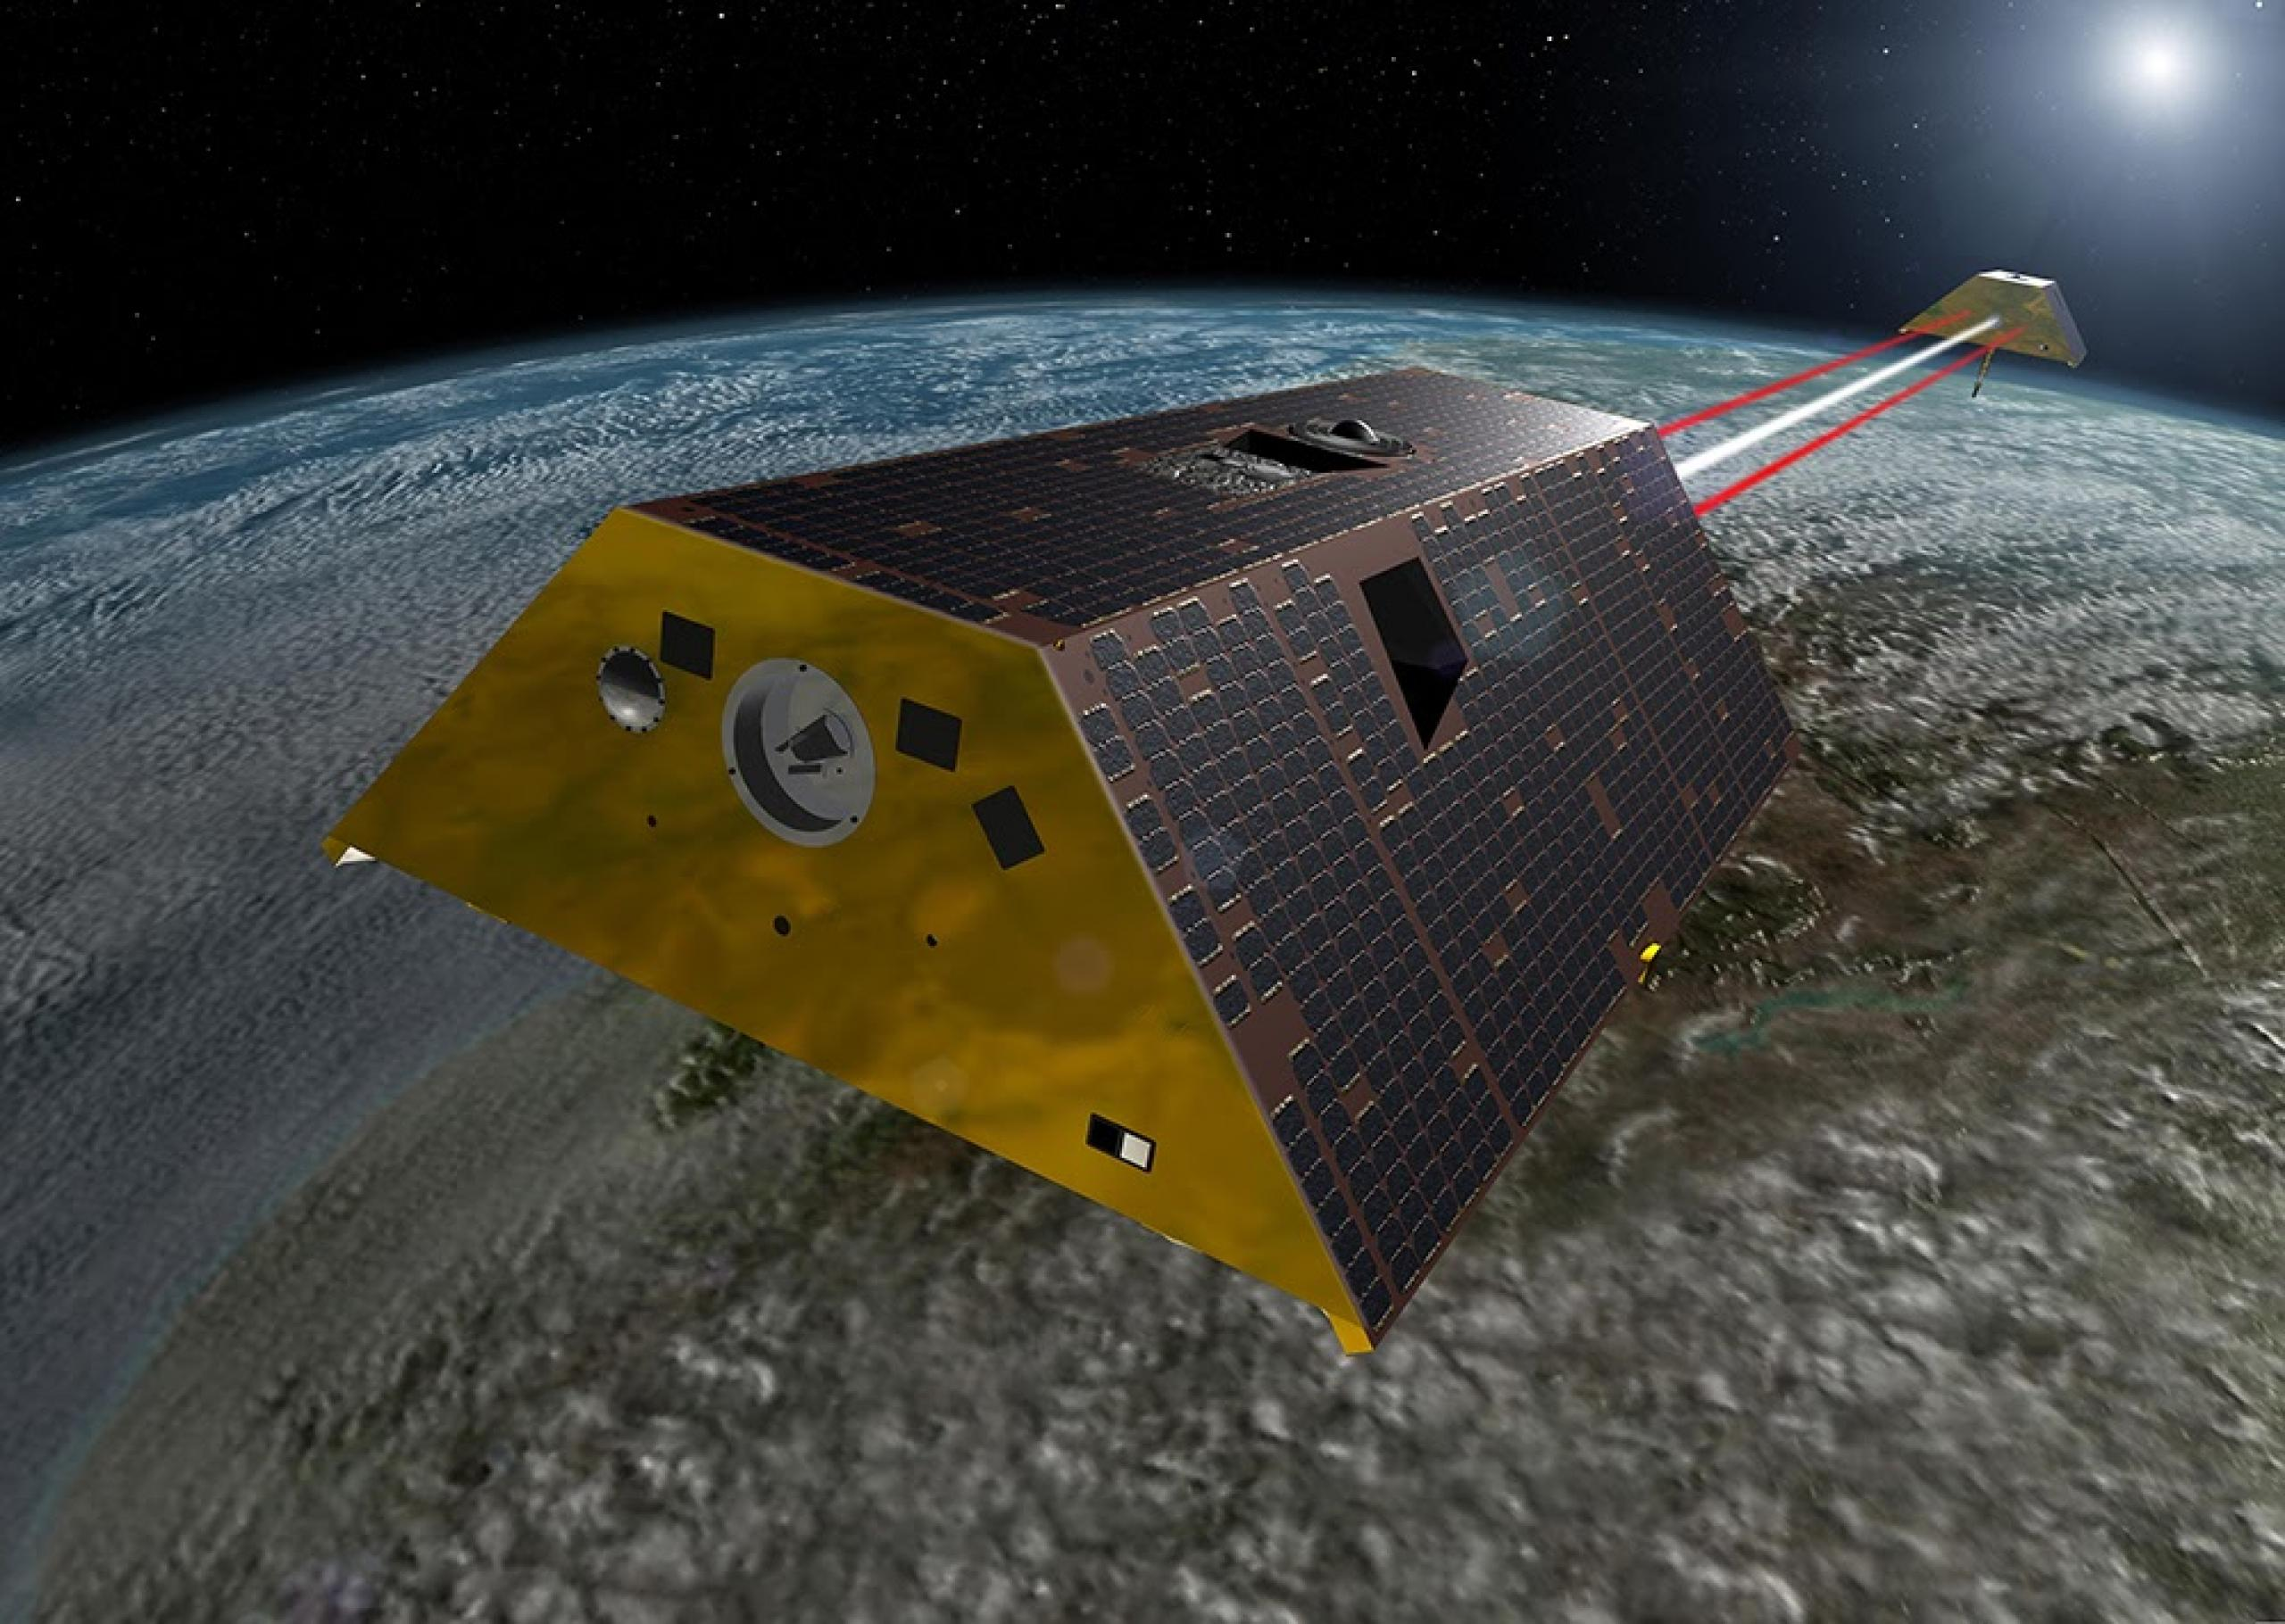 Artist concept of spacecraft orbiting the earth